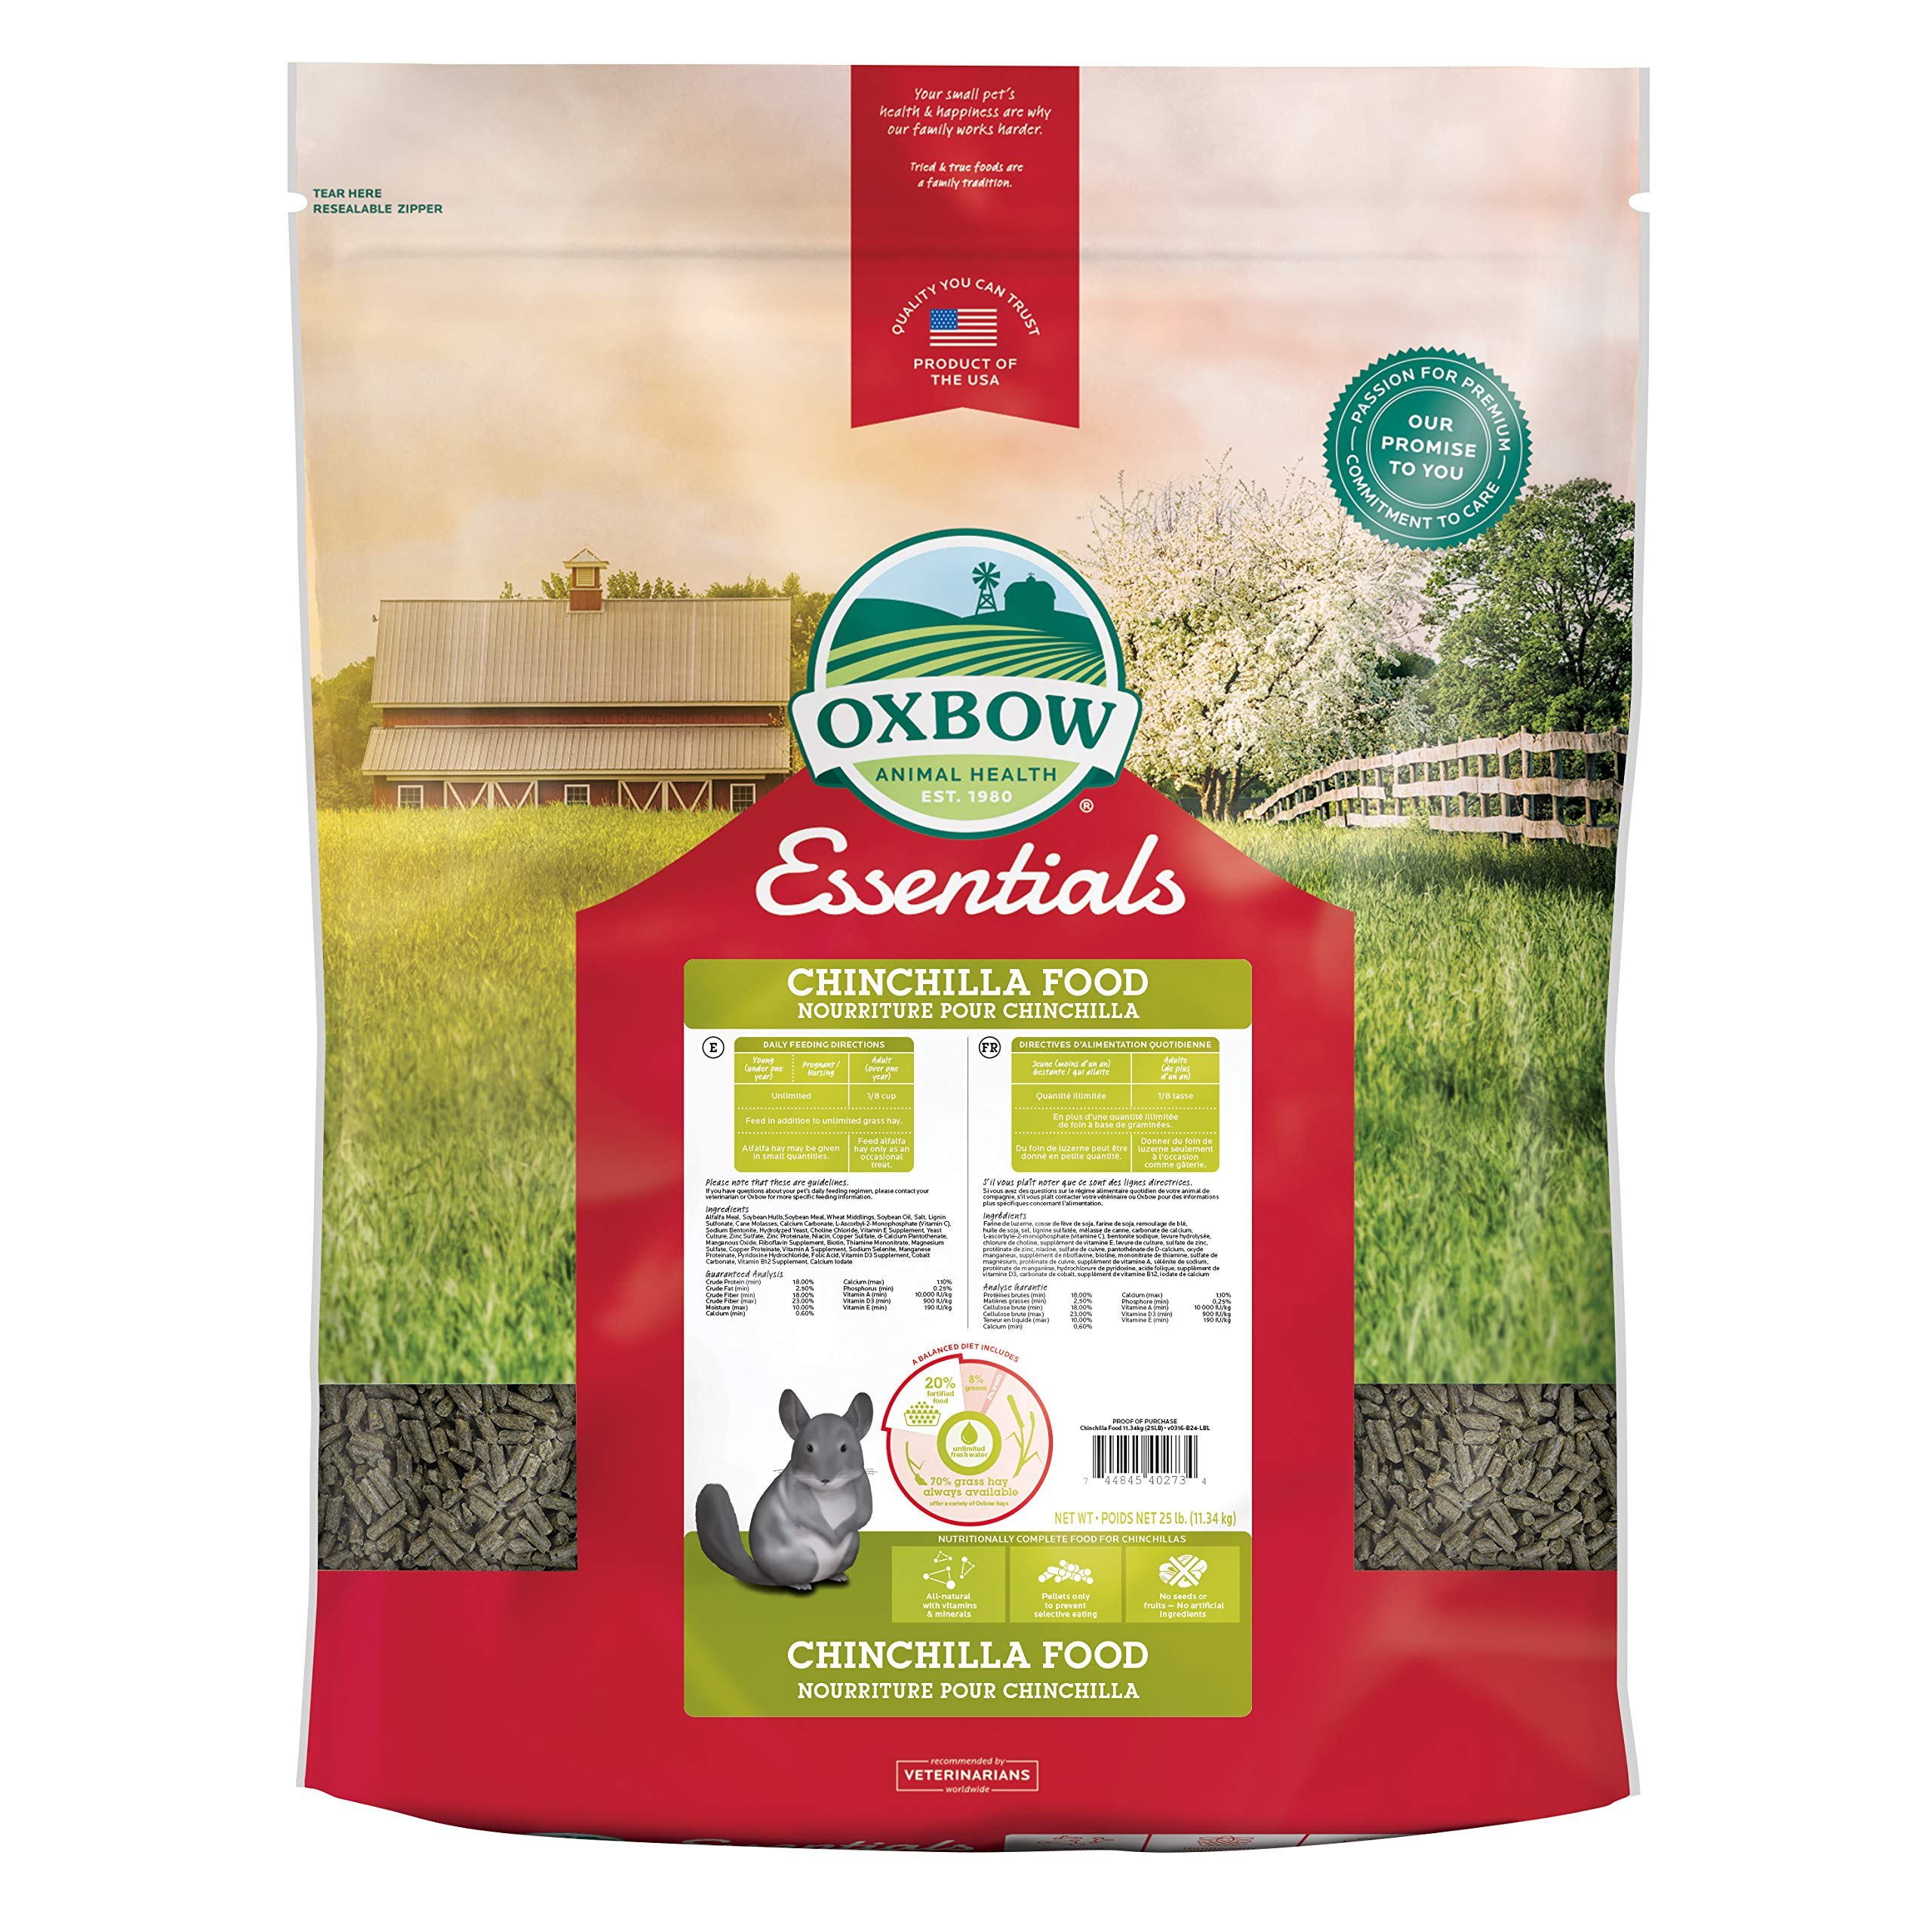 Oxbow Animal Health Essentials Deluxe Chinchilla Food, 25-Pound by Oxbow Animal Health